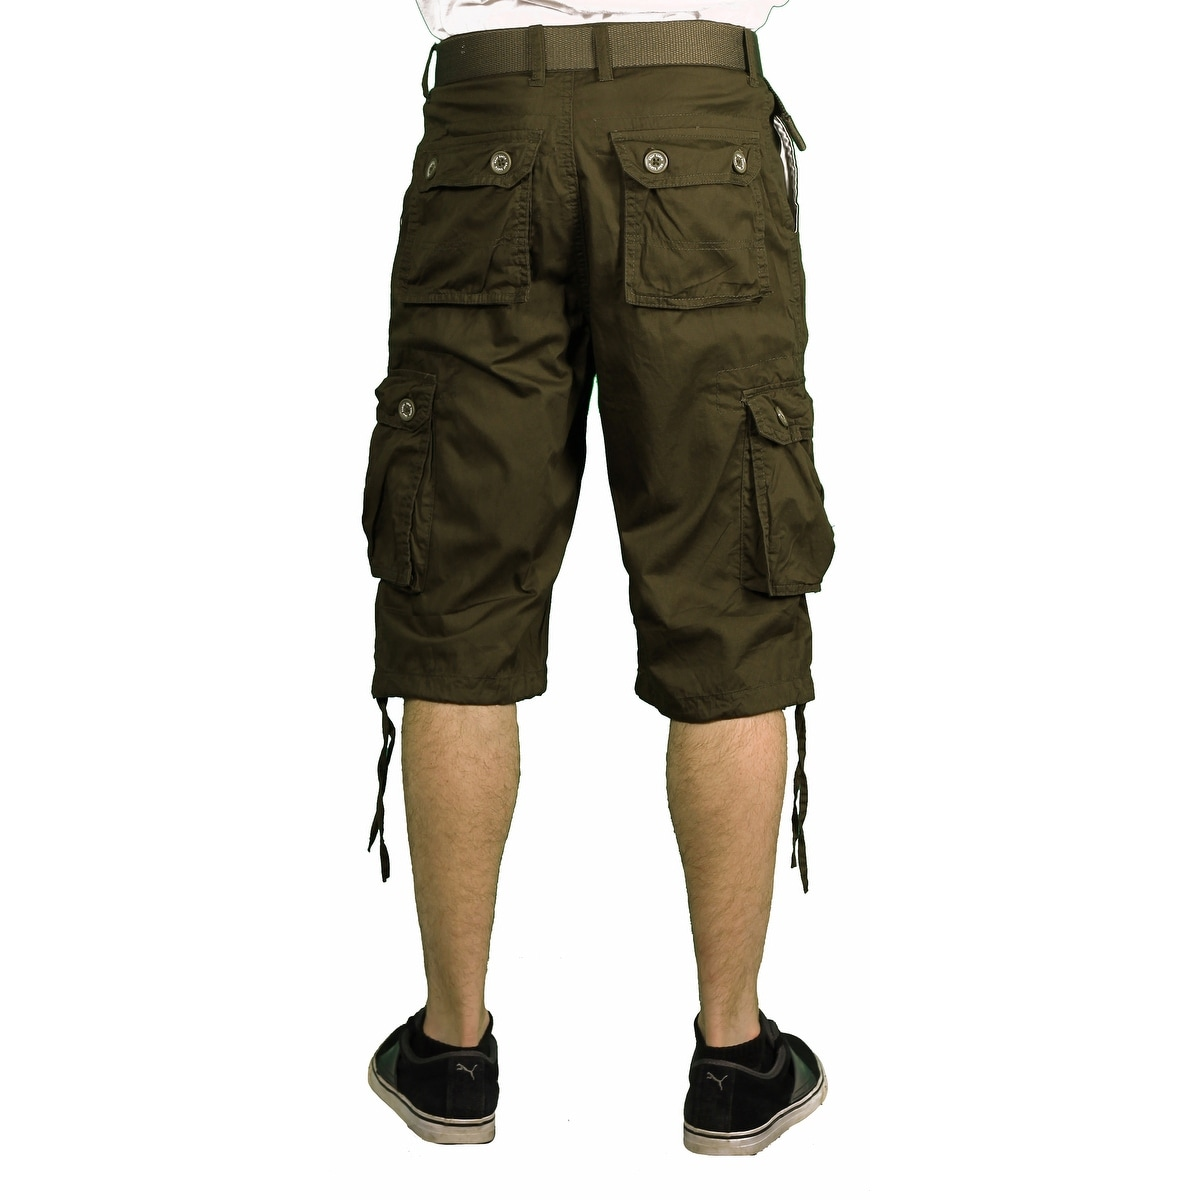 d43adeb52eb6 Shop Gray Earth Young Men s Classic Cargo Shorts - Free Shipping On ...